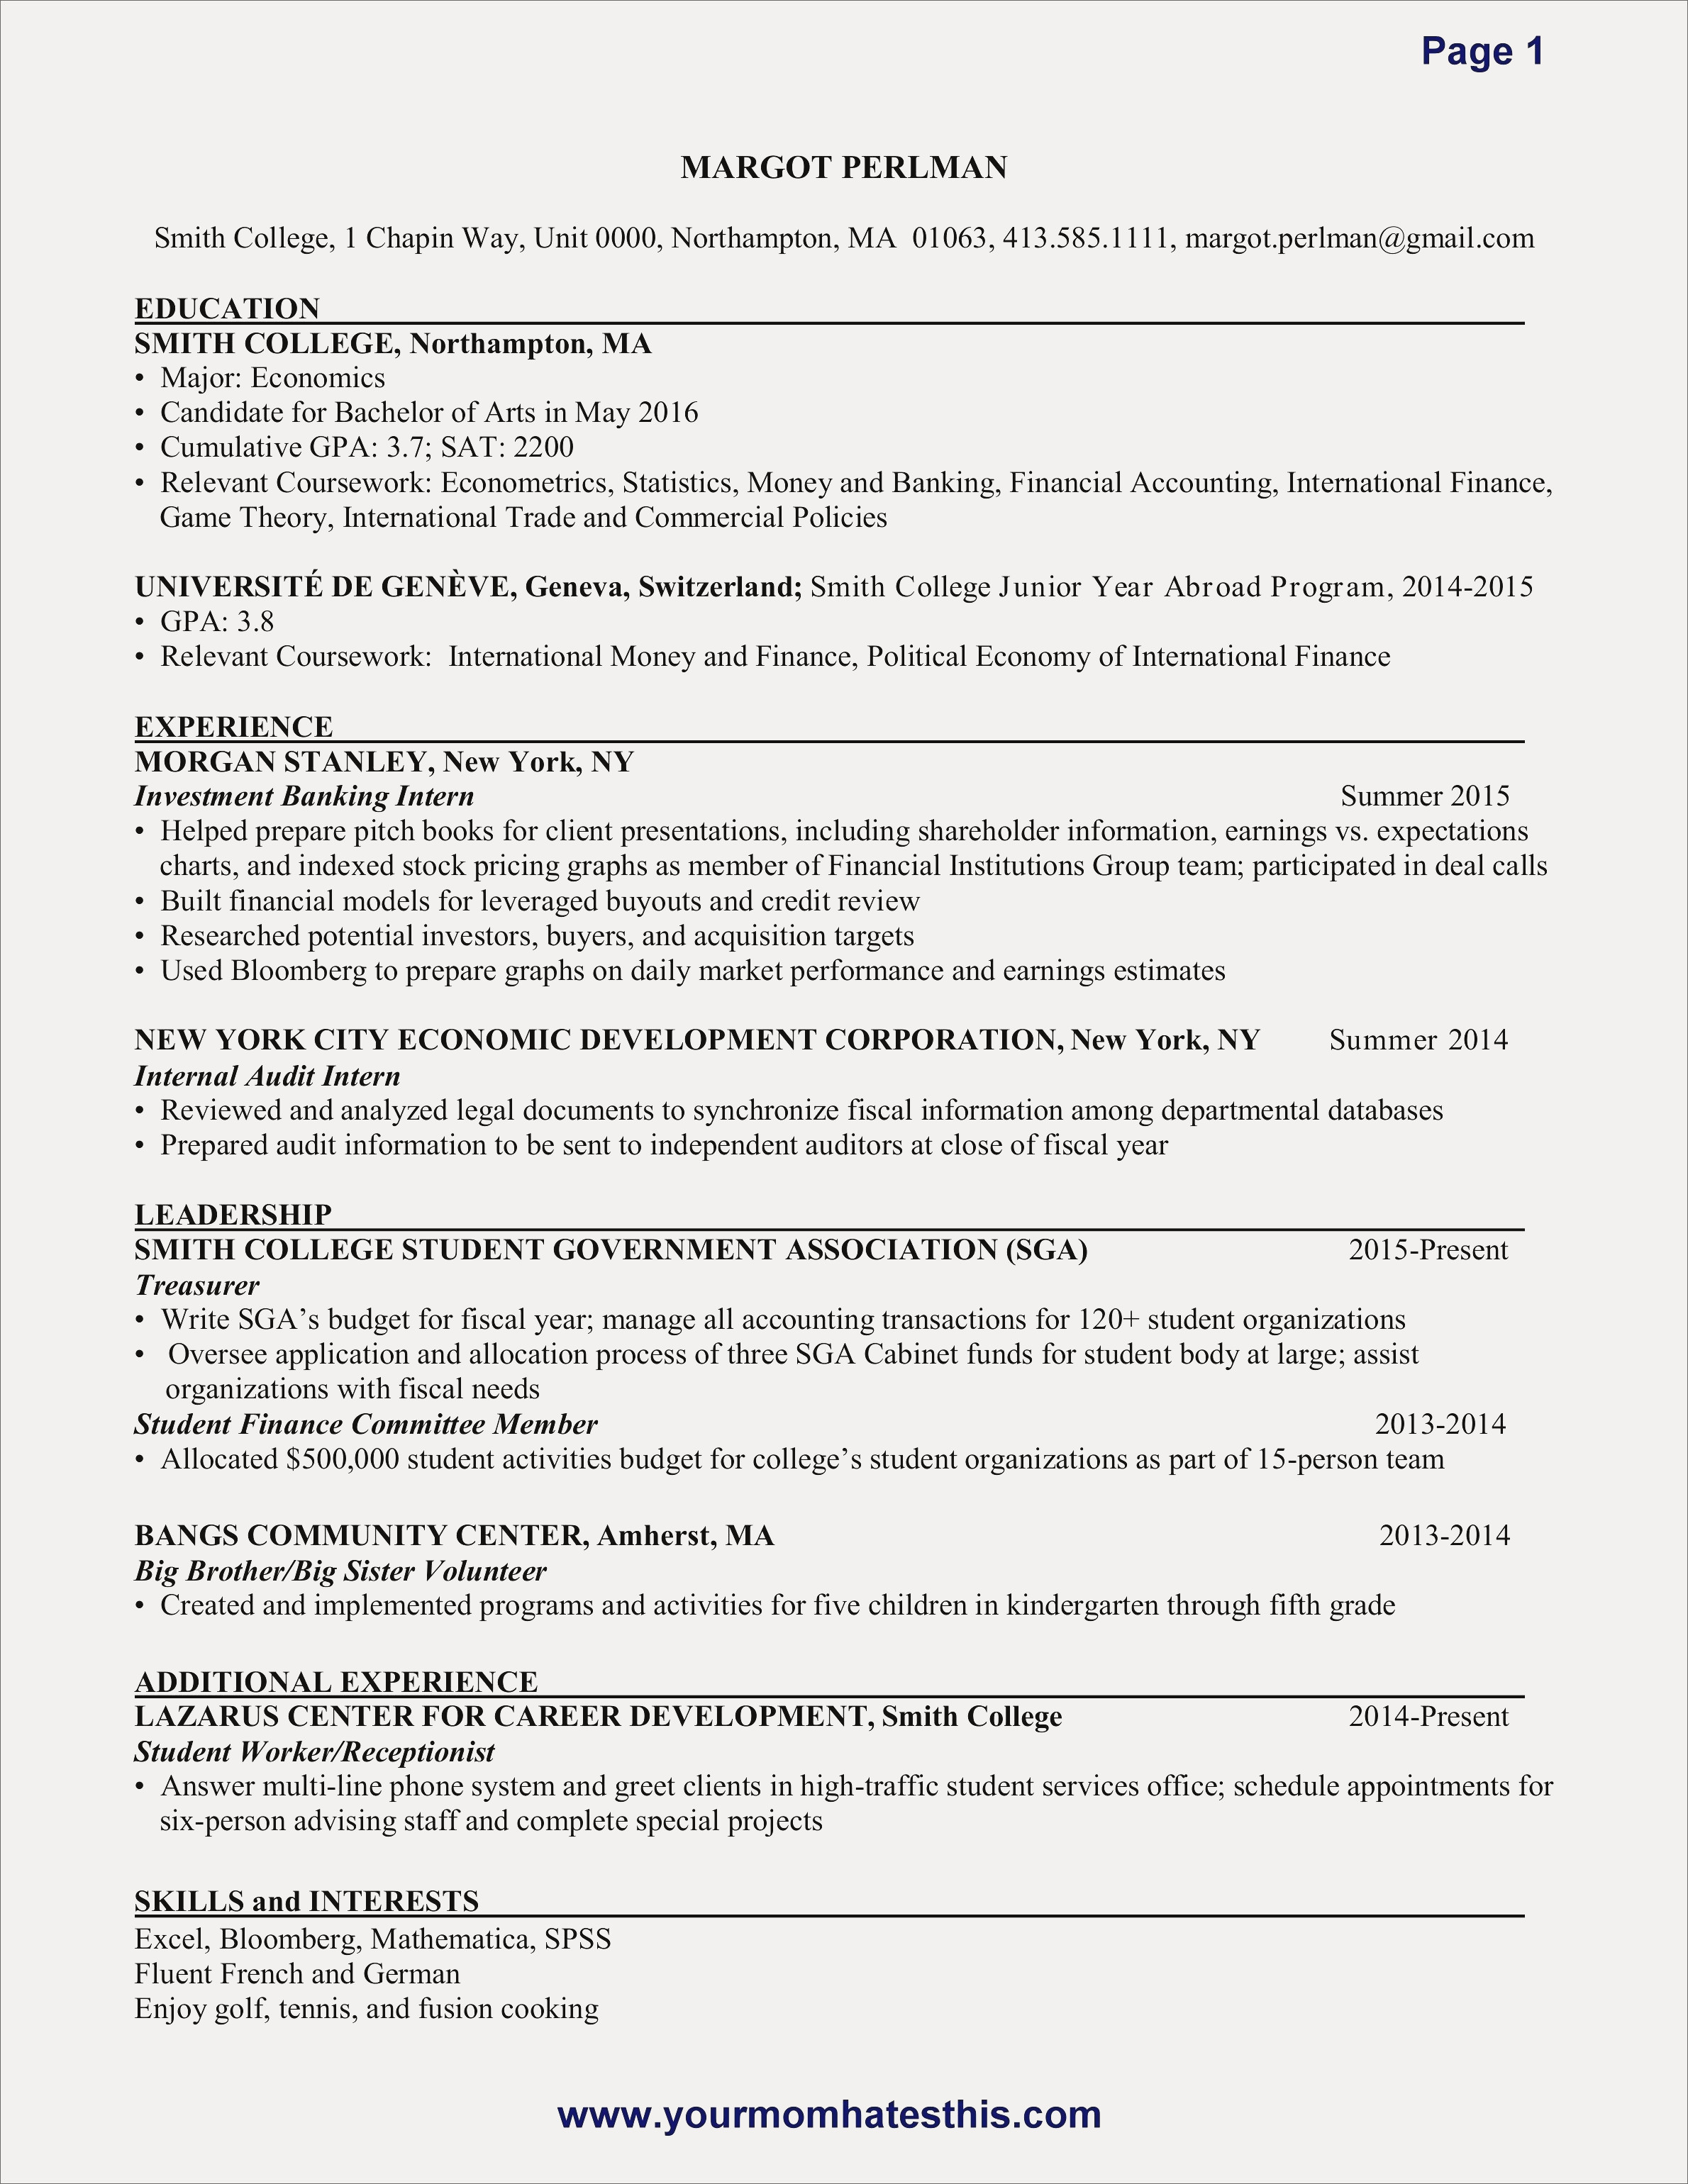 Law Firm Resume - Lawyer Resume New Law Firm Resume From attorney Resume Samples Best